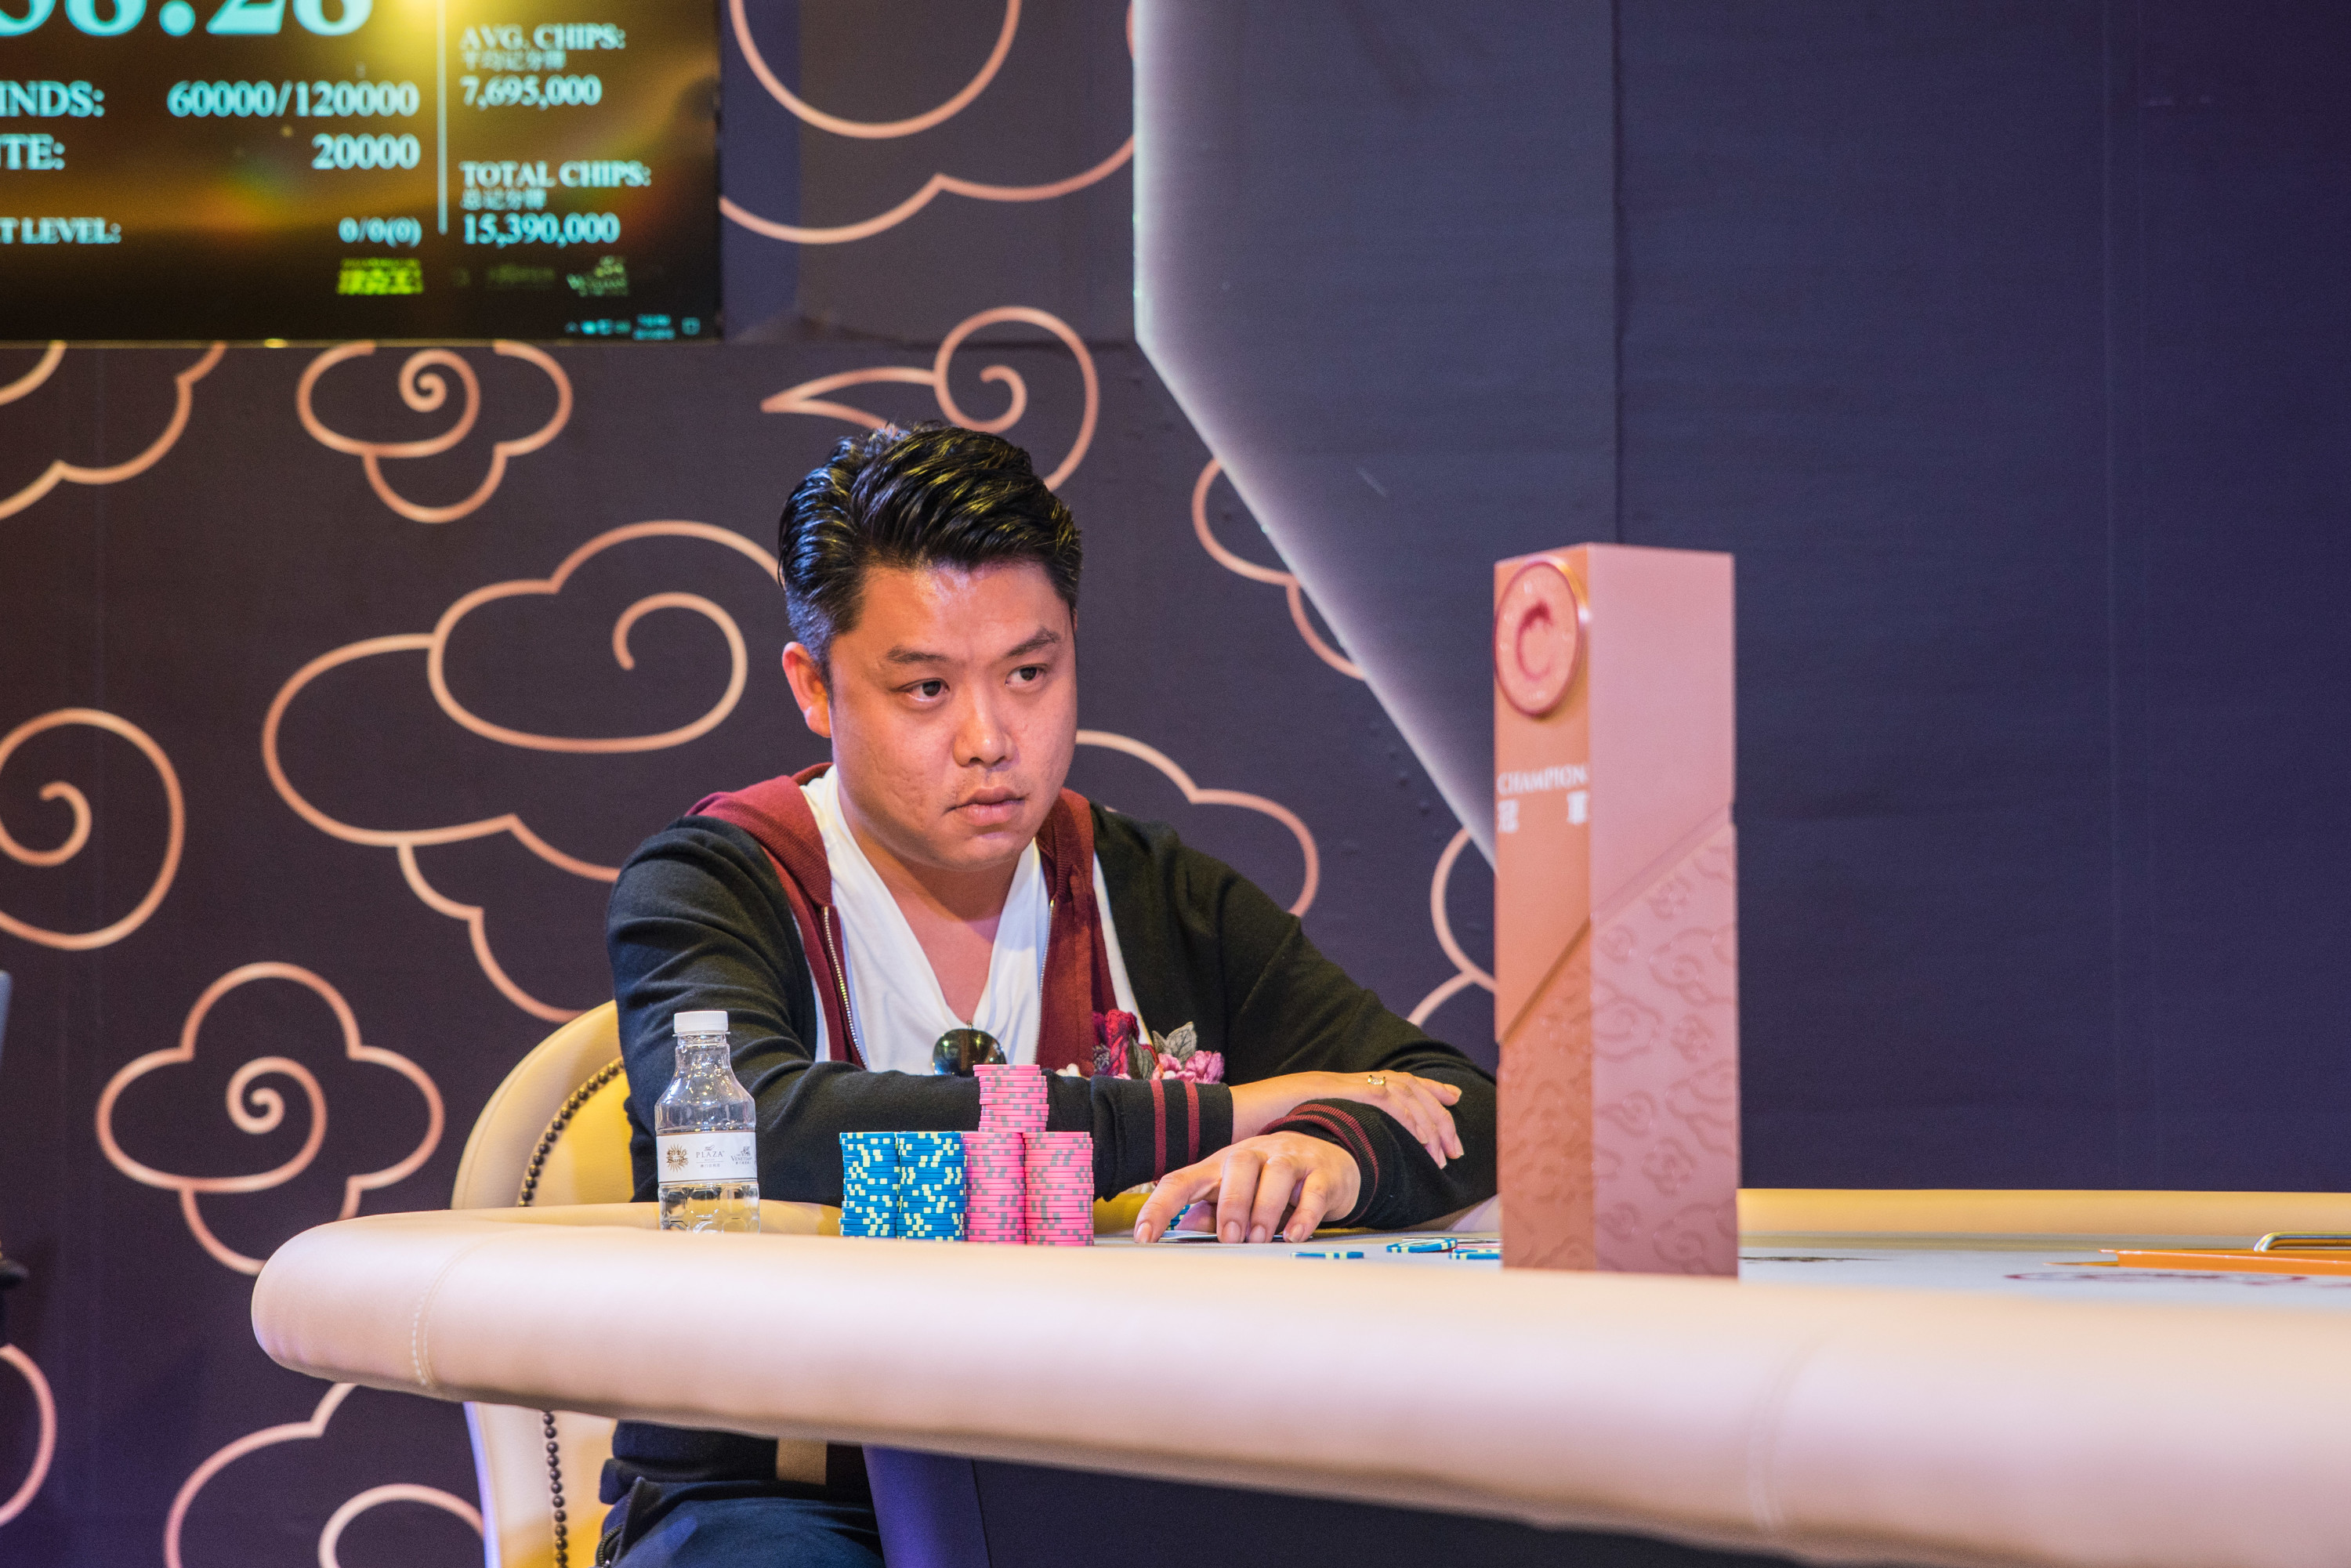 Ivan Leow heads-up for the OPC title